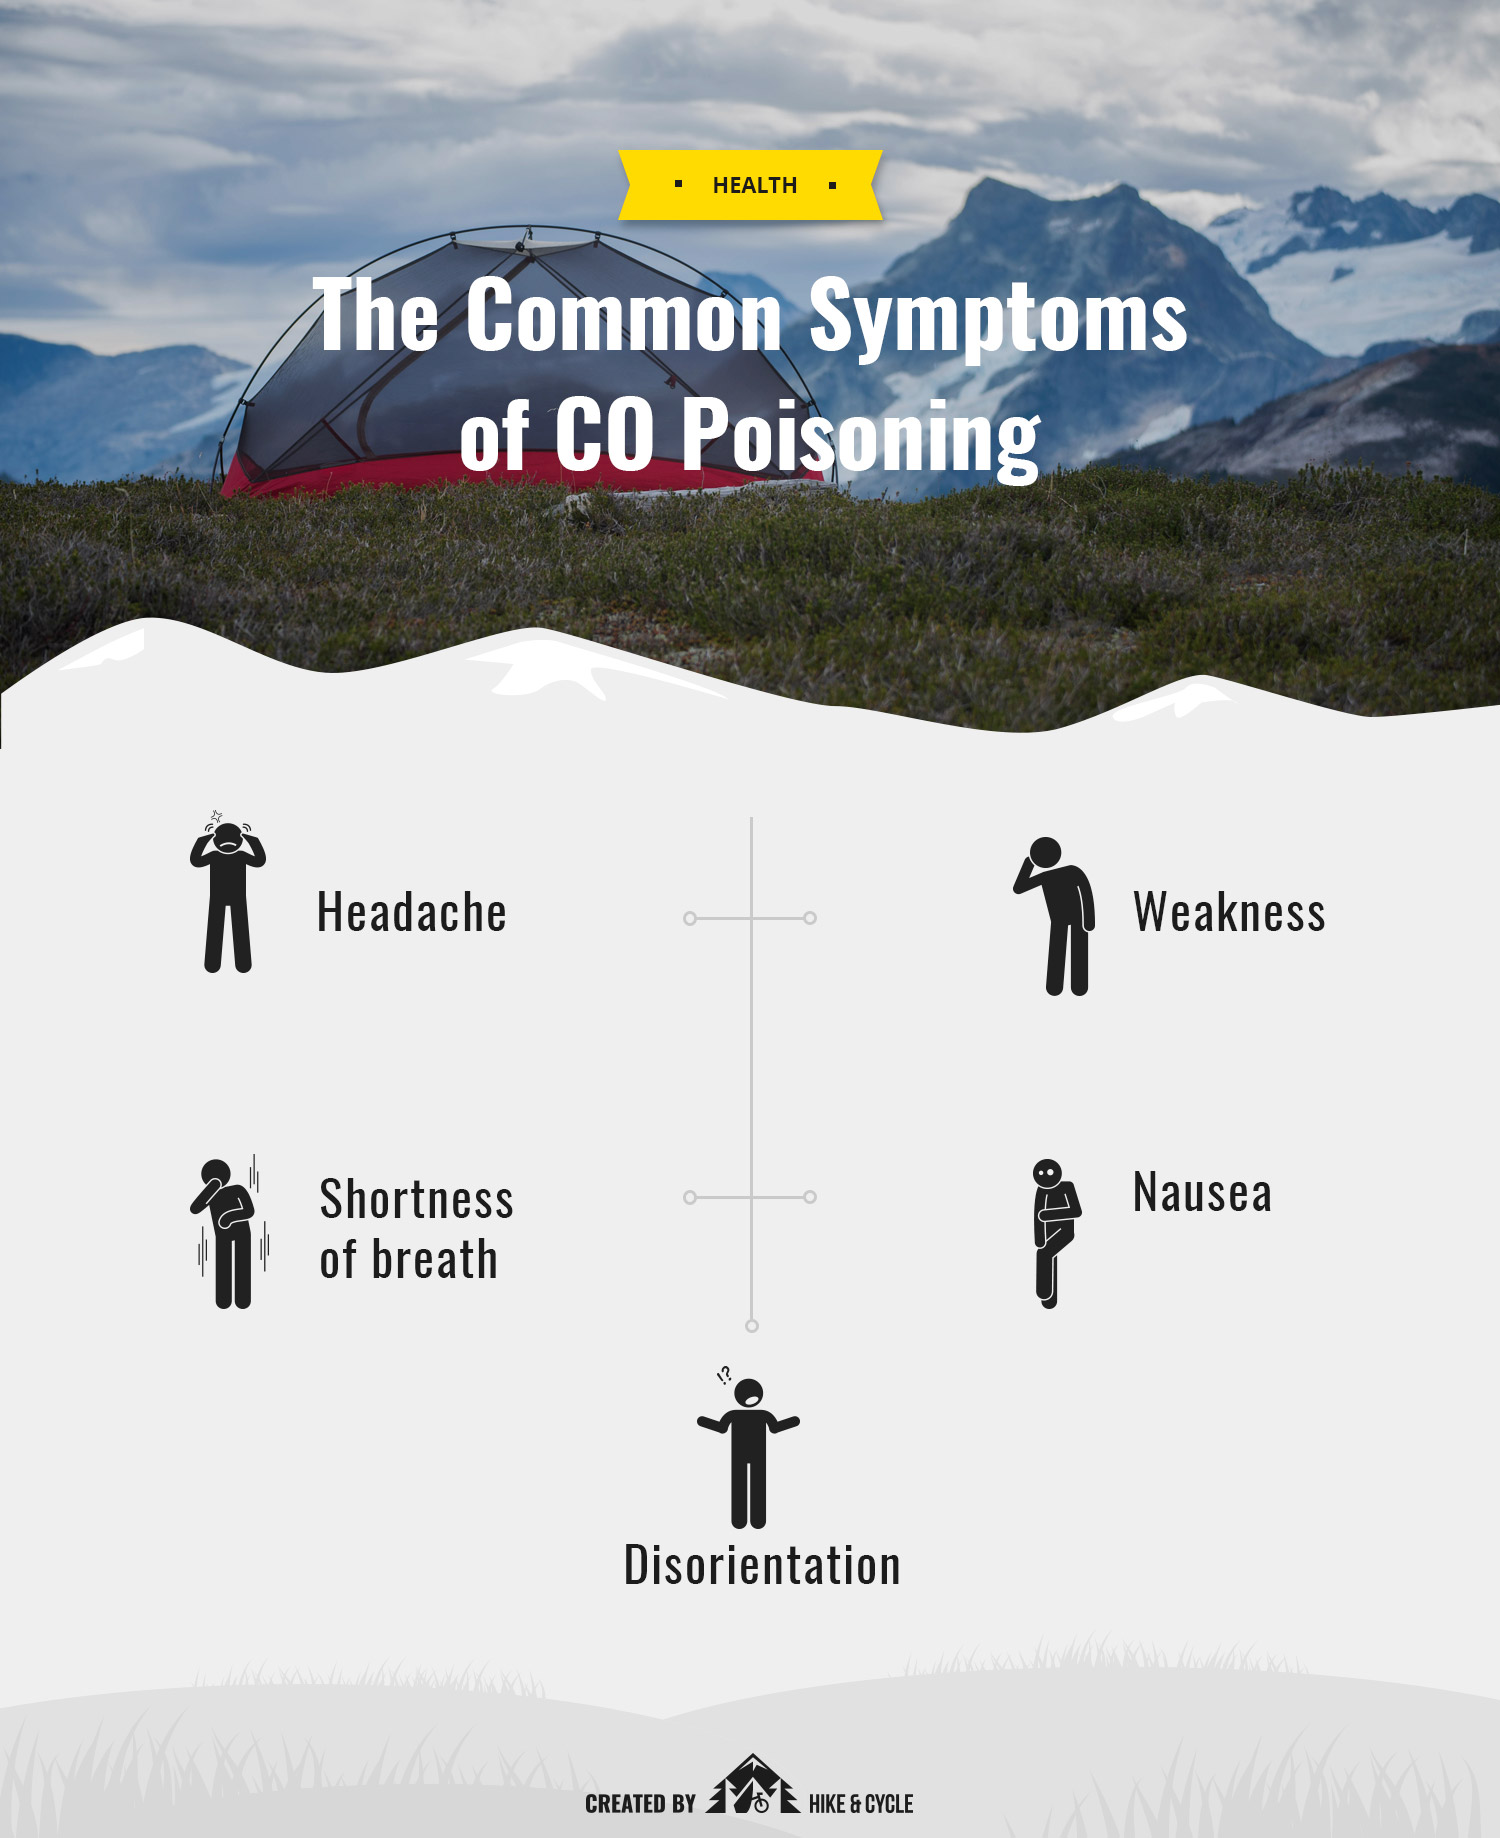 The Common Symptoms of CO Poisoning